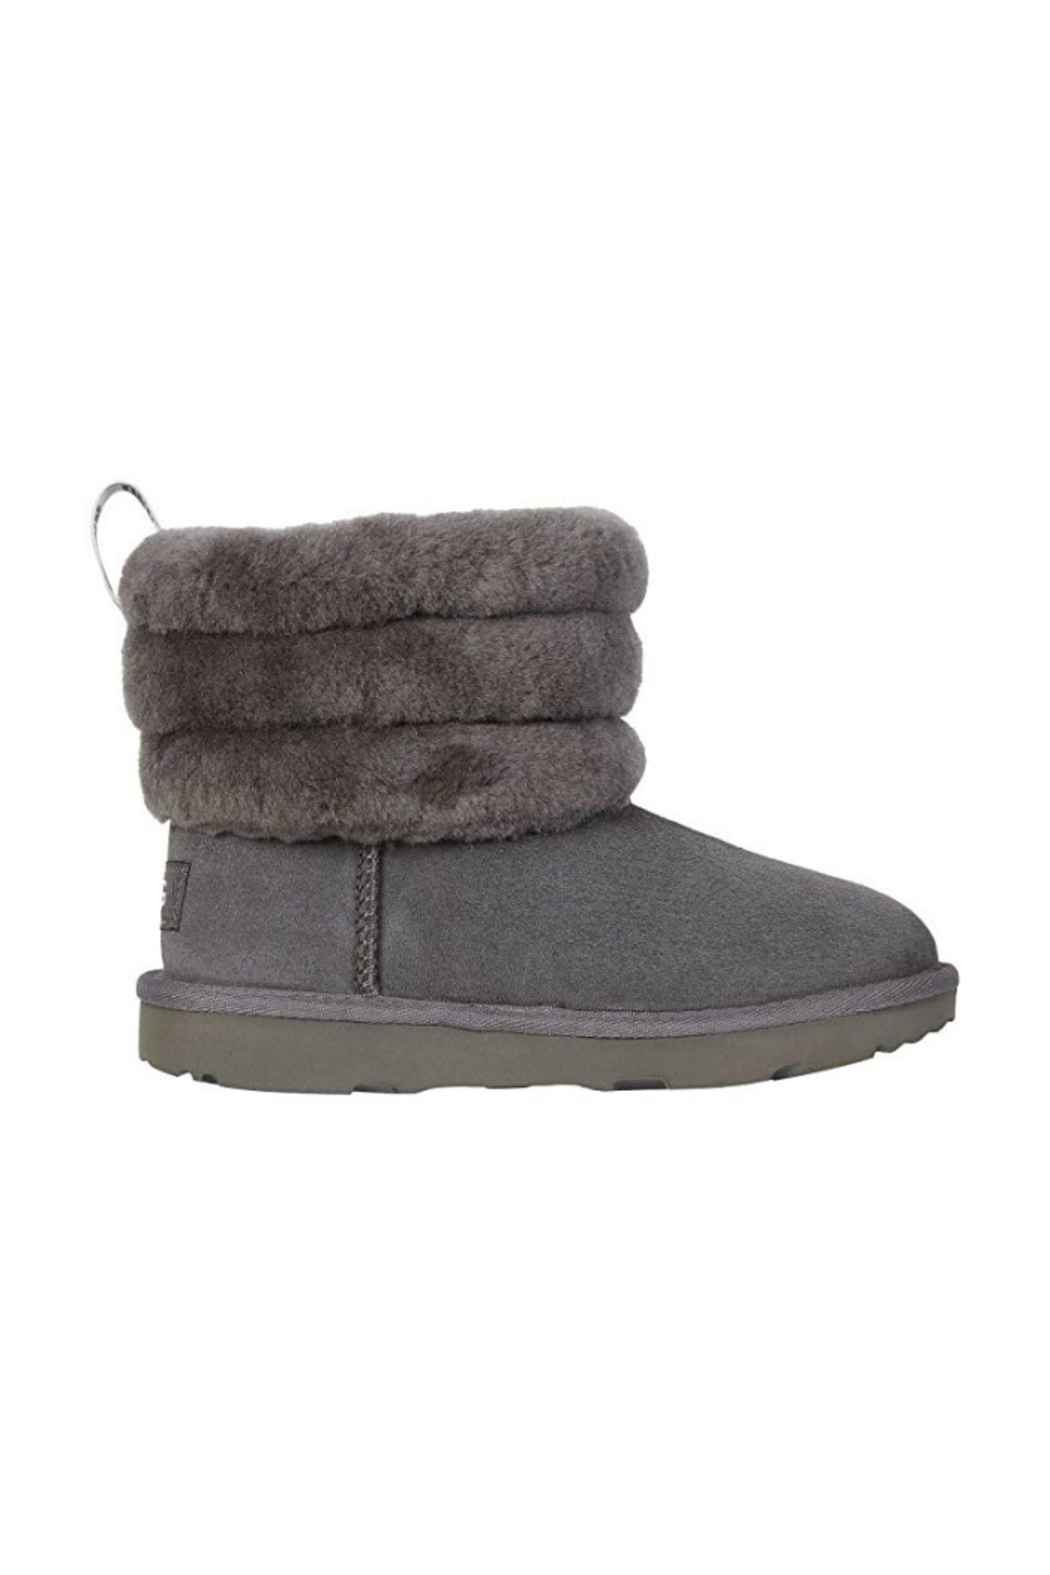 Ugg Toddler's Fluff Mini Boot - Main Image